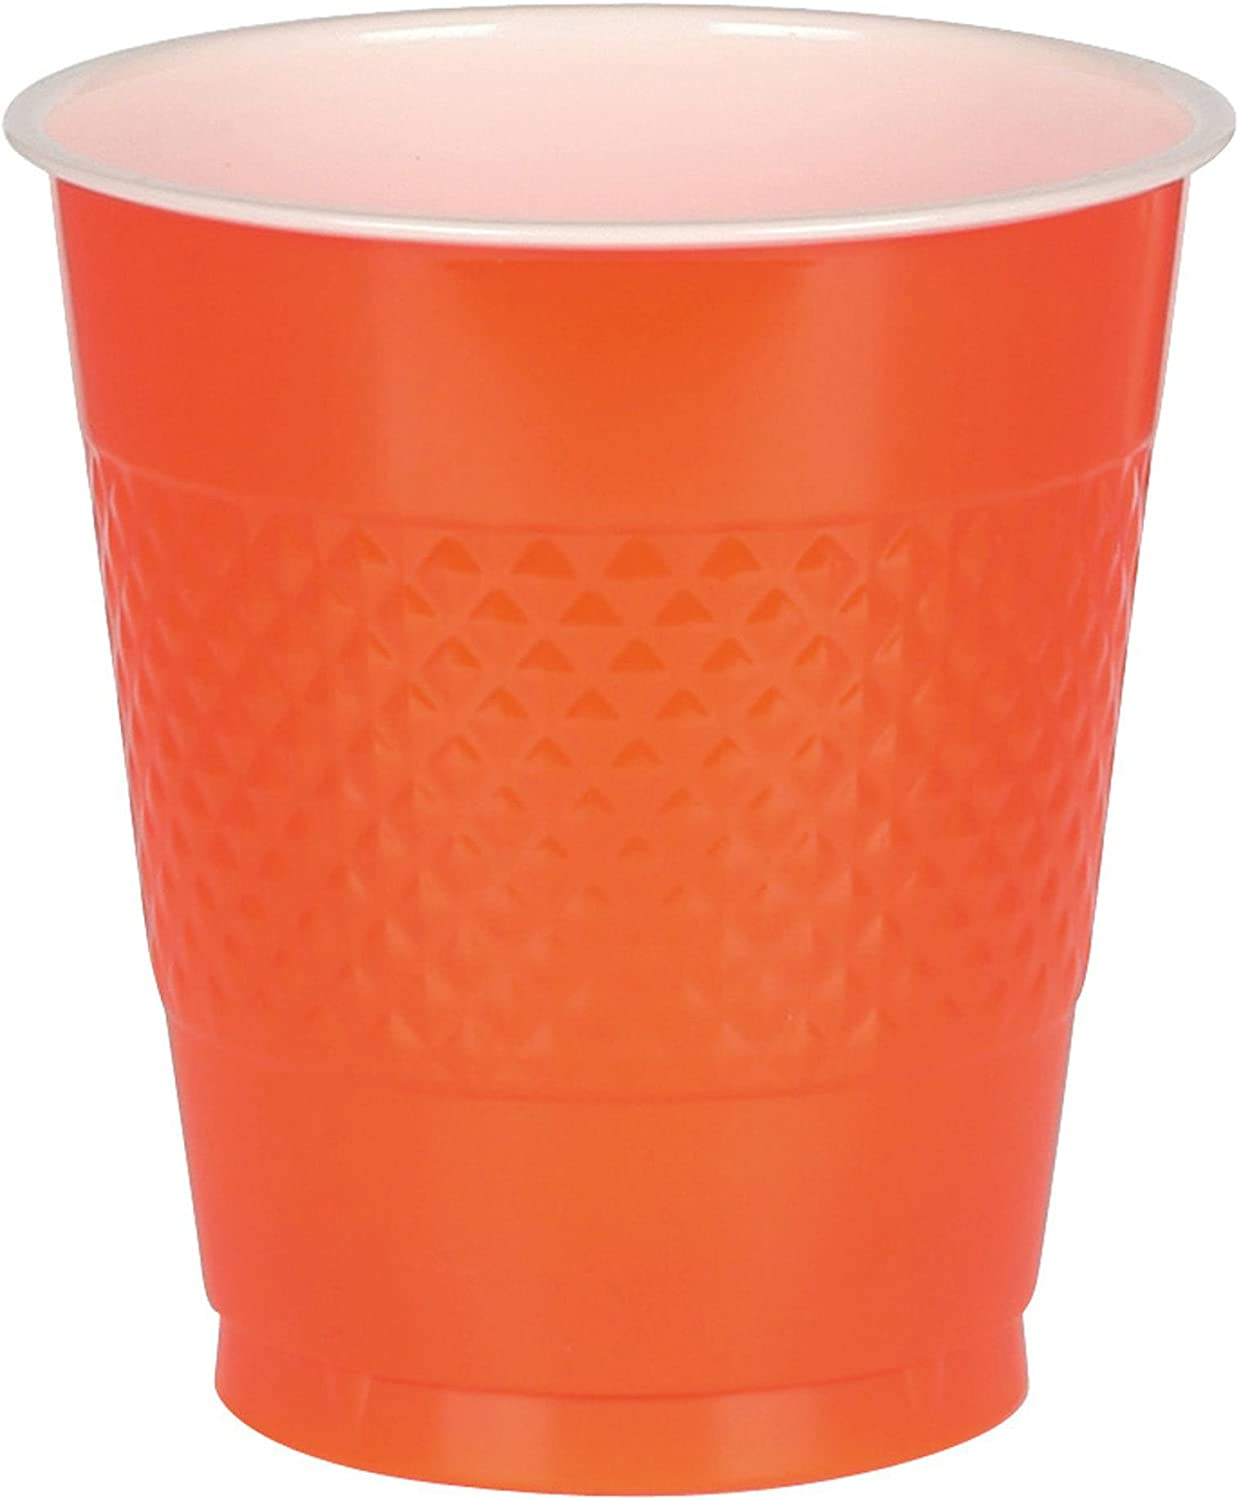 Big Party Pack Orange Peel Plastic Plates Pack of 50 10.25 Party Supply